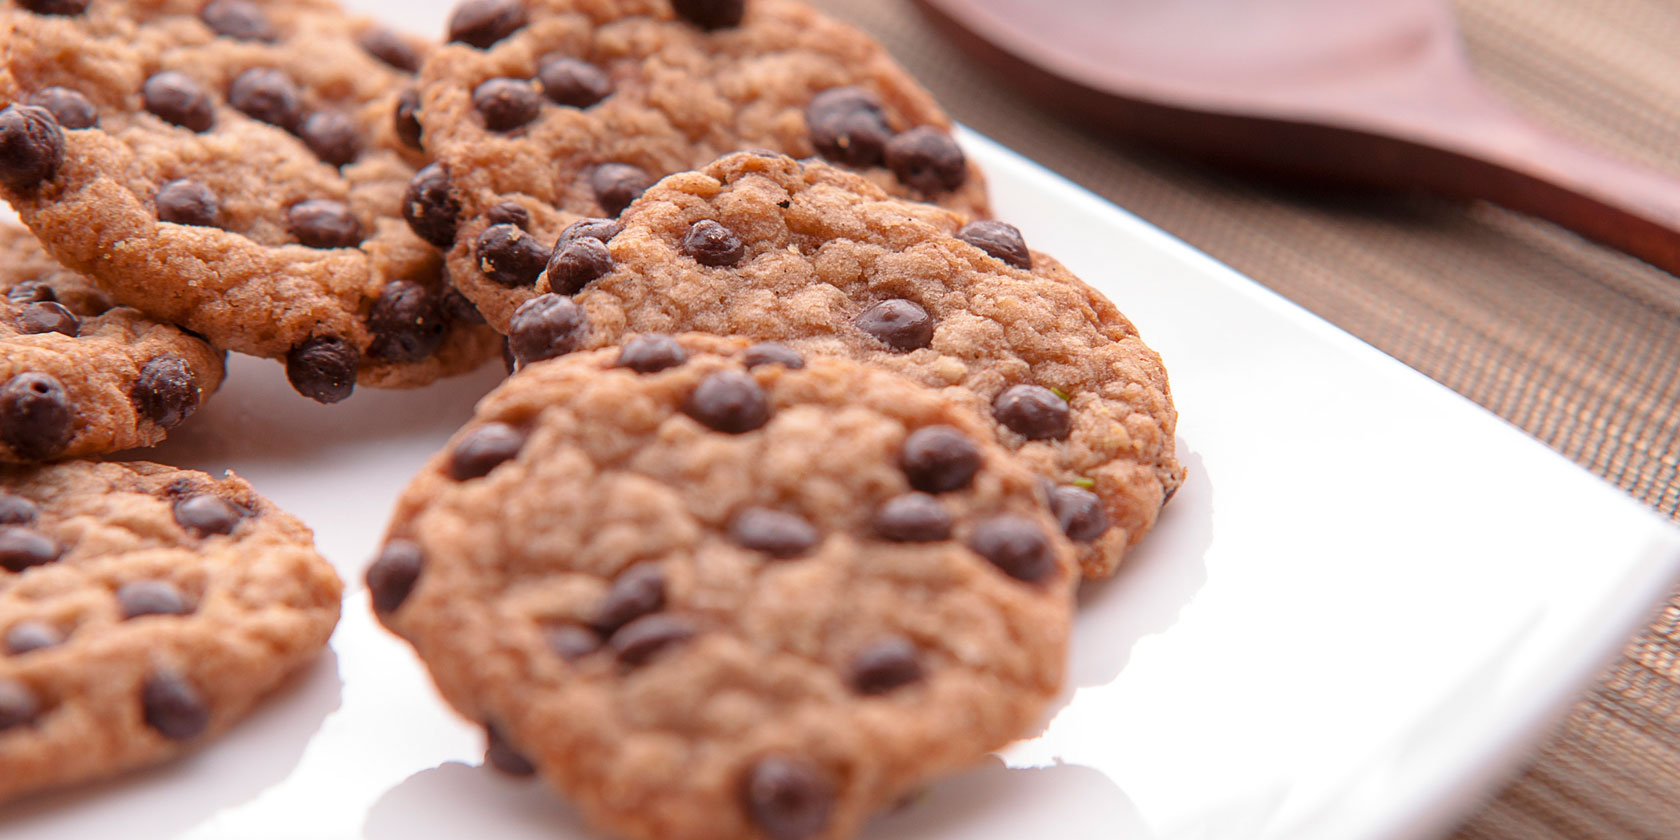 7 Types of Browser Cookies You Need to Know About